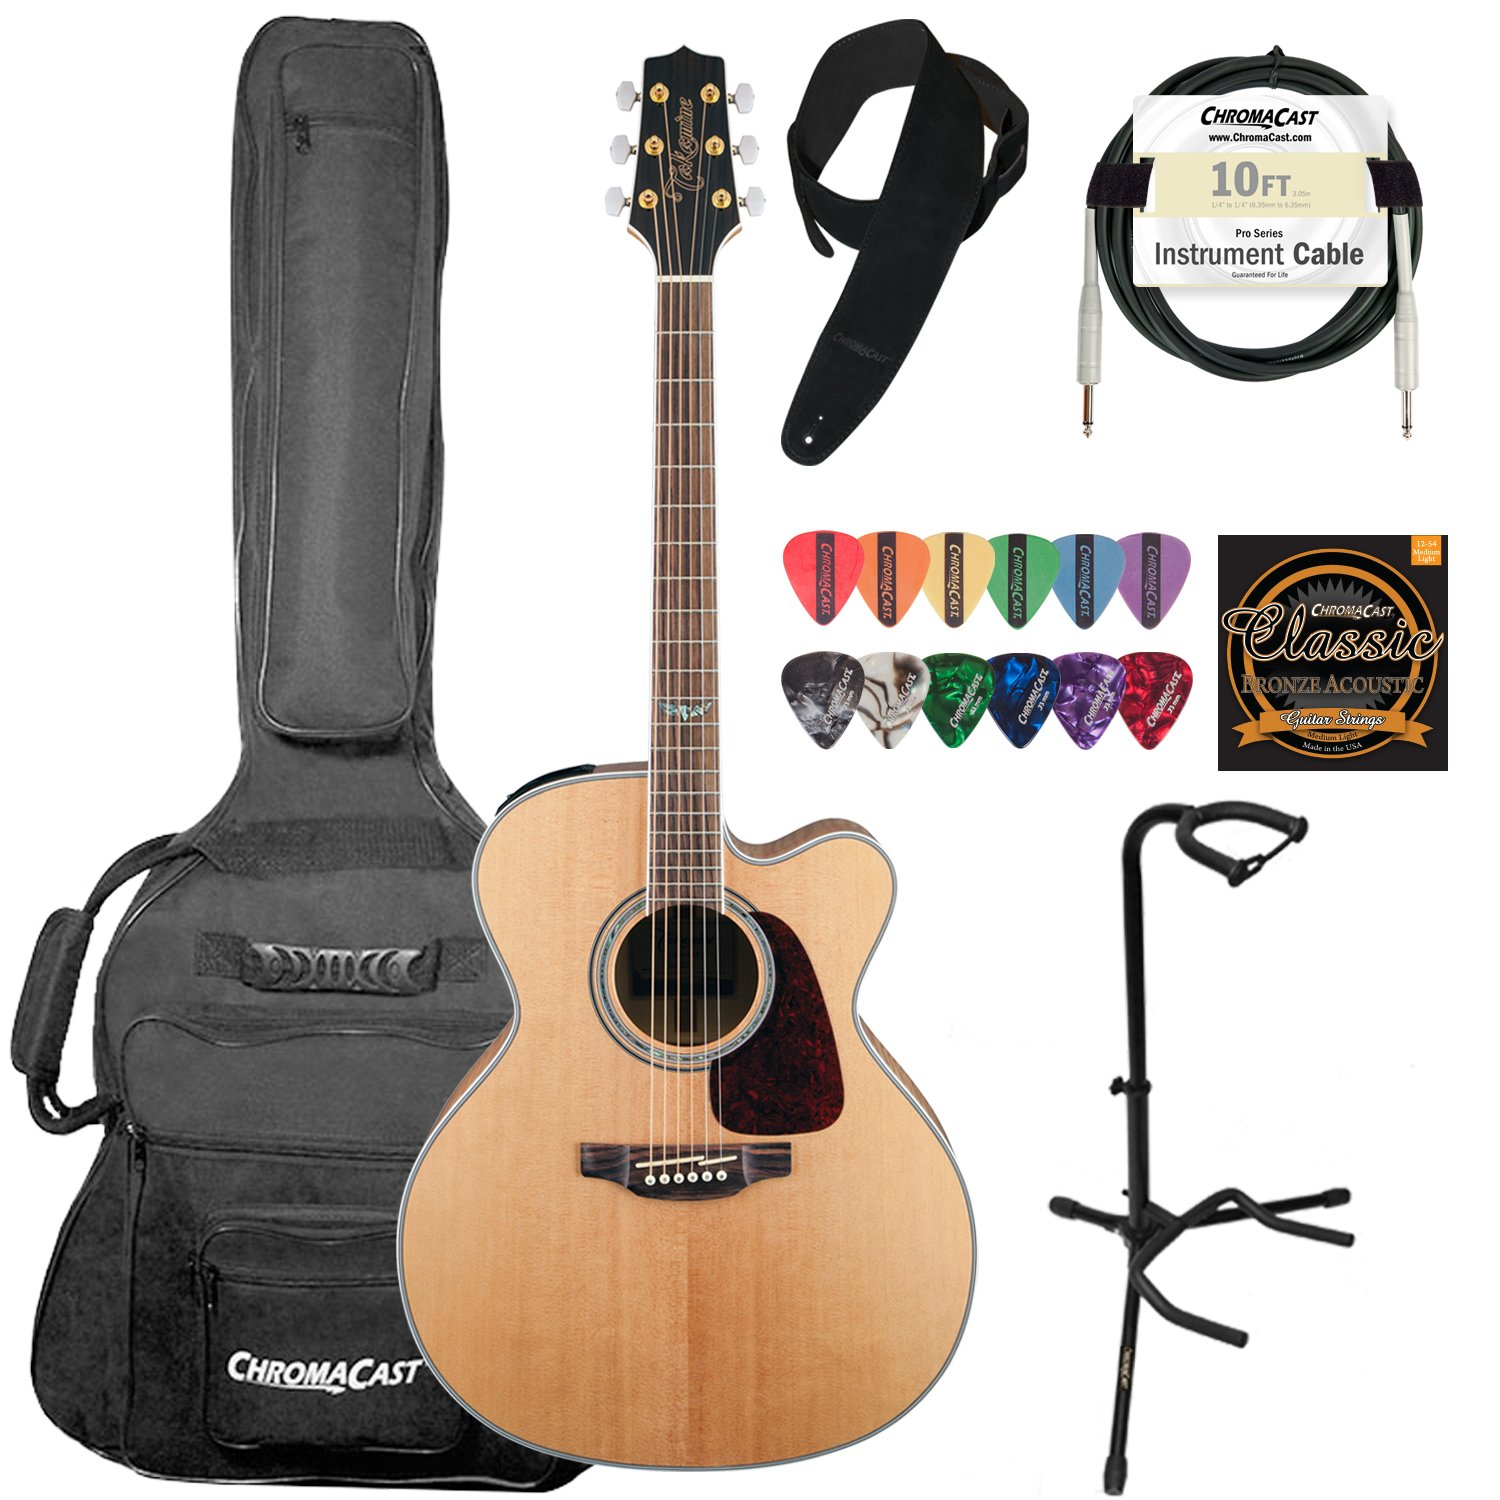 Cheap Takamine GJ72CE-NAT JUMBO Cutaway 6-String Acoustic Electric Guitar Kit - Includes: ChromaCast Suede Strap 10ft Pro Series Guitar Cable Strings Pick Sampler Pack & Upright Guitar Stand Black Friday & Cyber Monday 2019